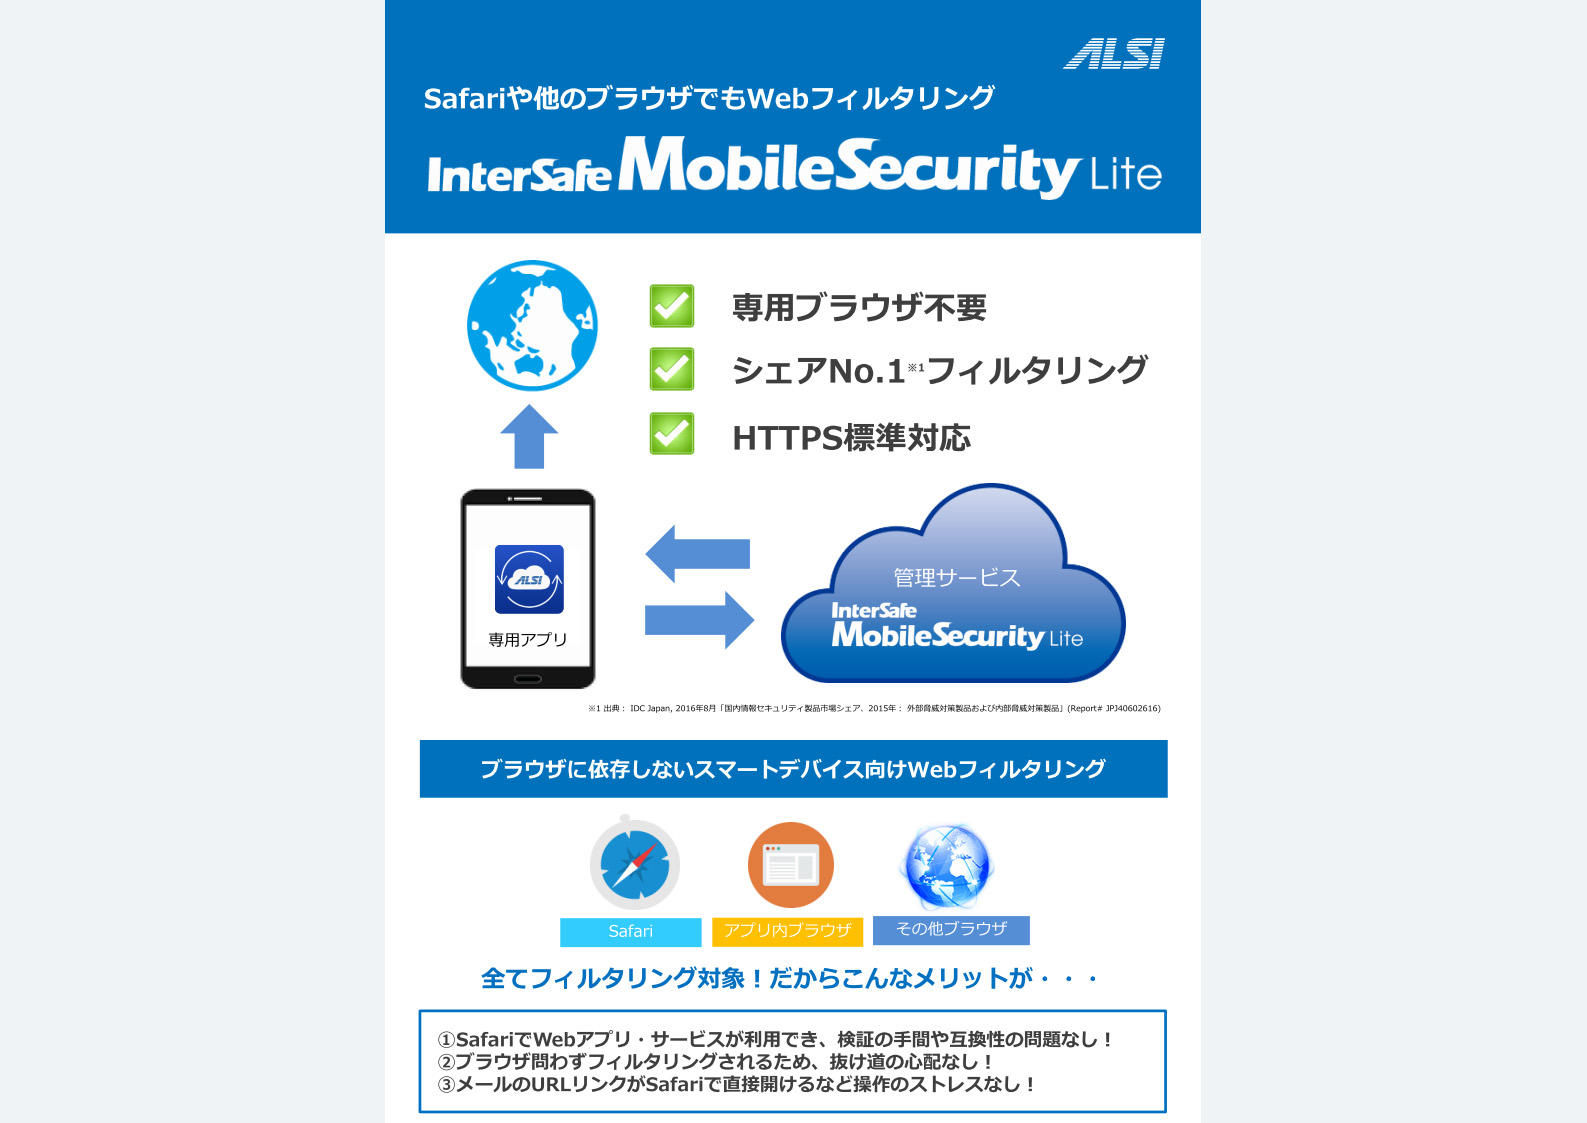 InterSafe MobileSecurity Lite パンフレット